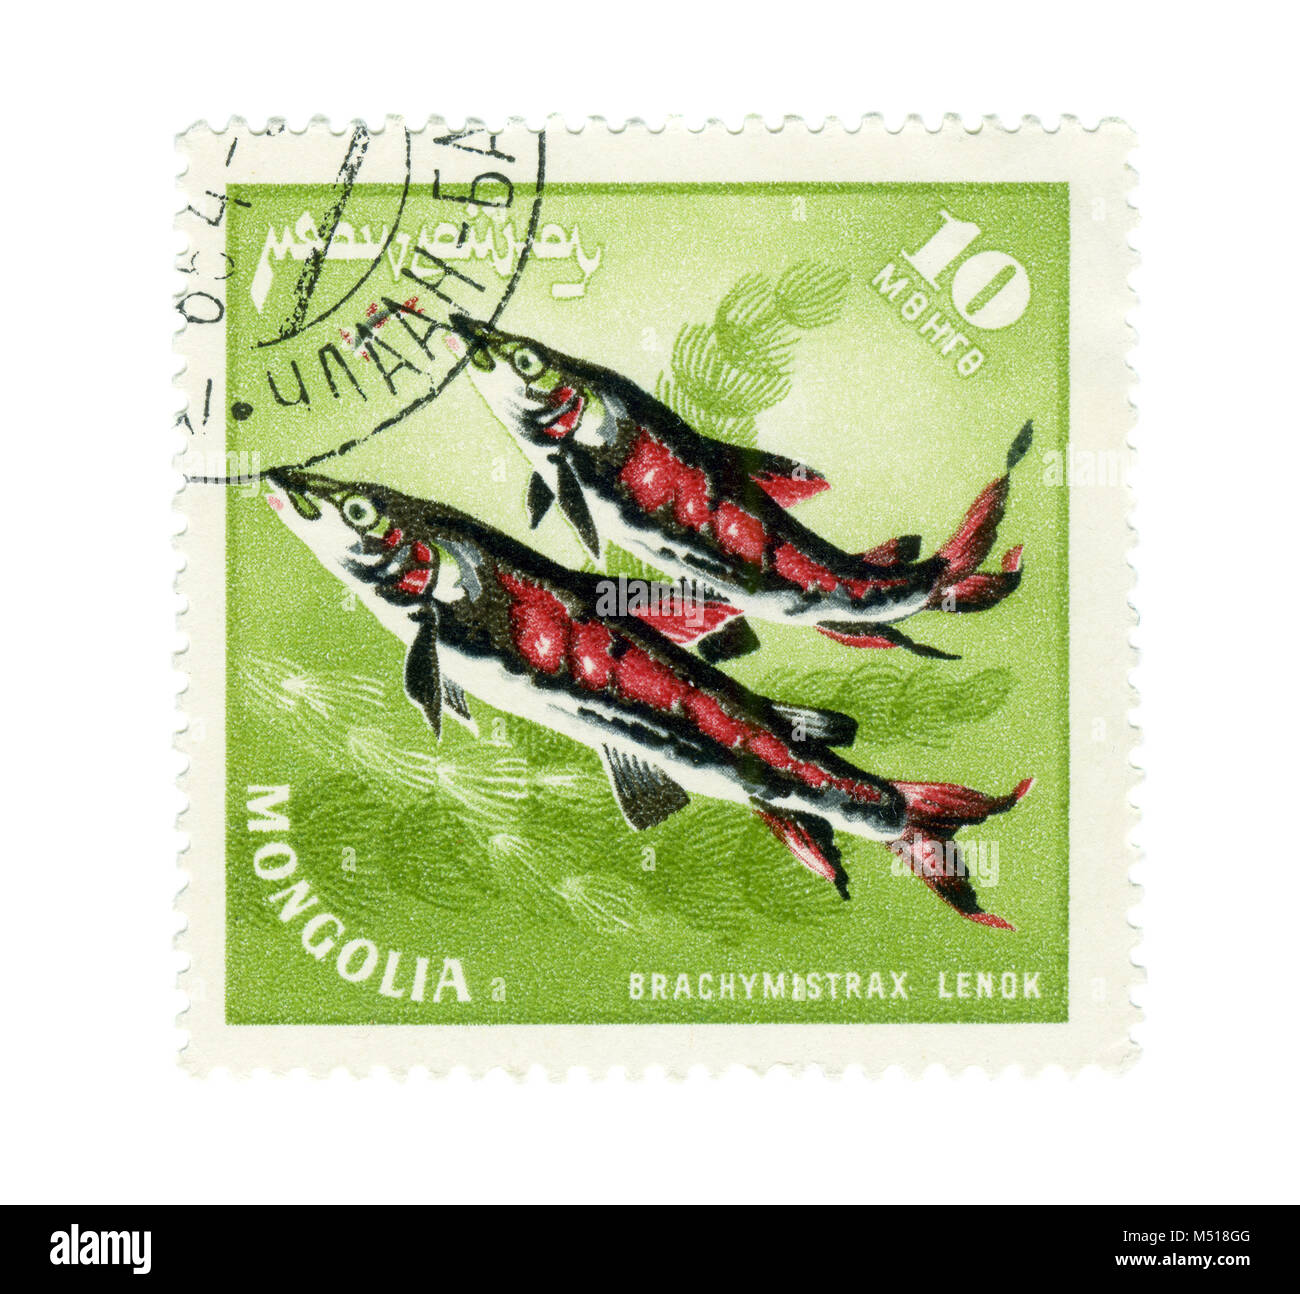 MONGOLIA - CIRCA : A stamp printed in Mongolia shows a Fish - Lenok with the inscription 'Brachymystax lenok', - Stock Image